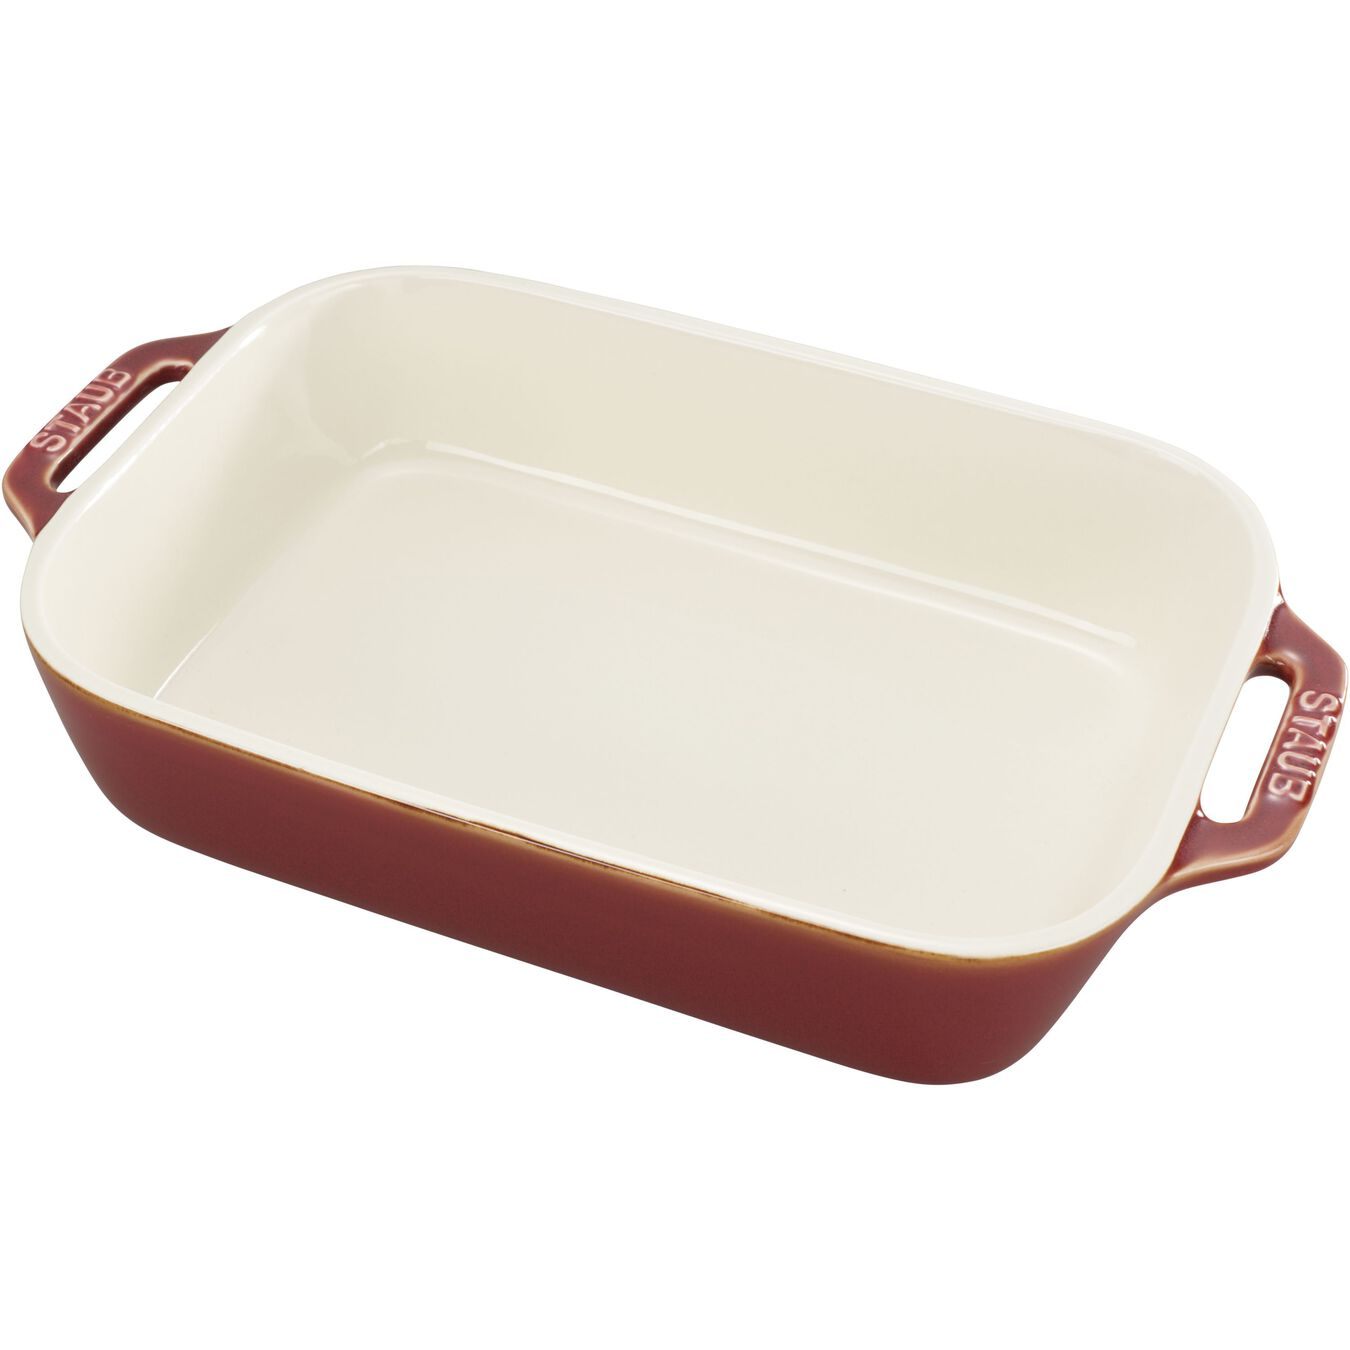 10.5-inch x 7.5-inch Rectangular Baking Dish - Rustic Red,,large 2